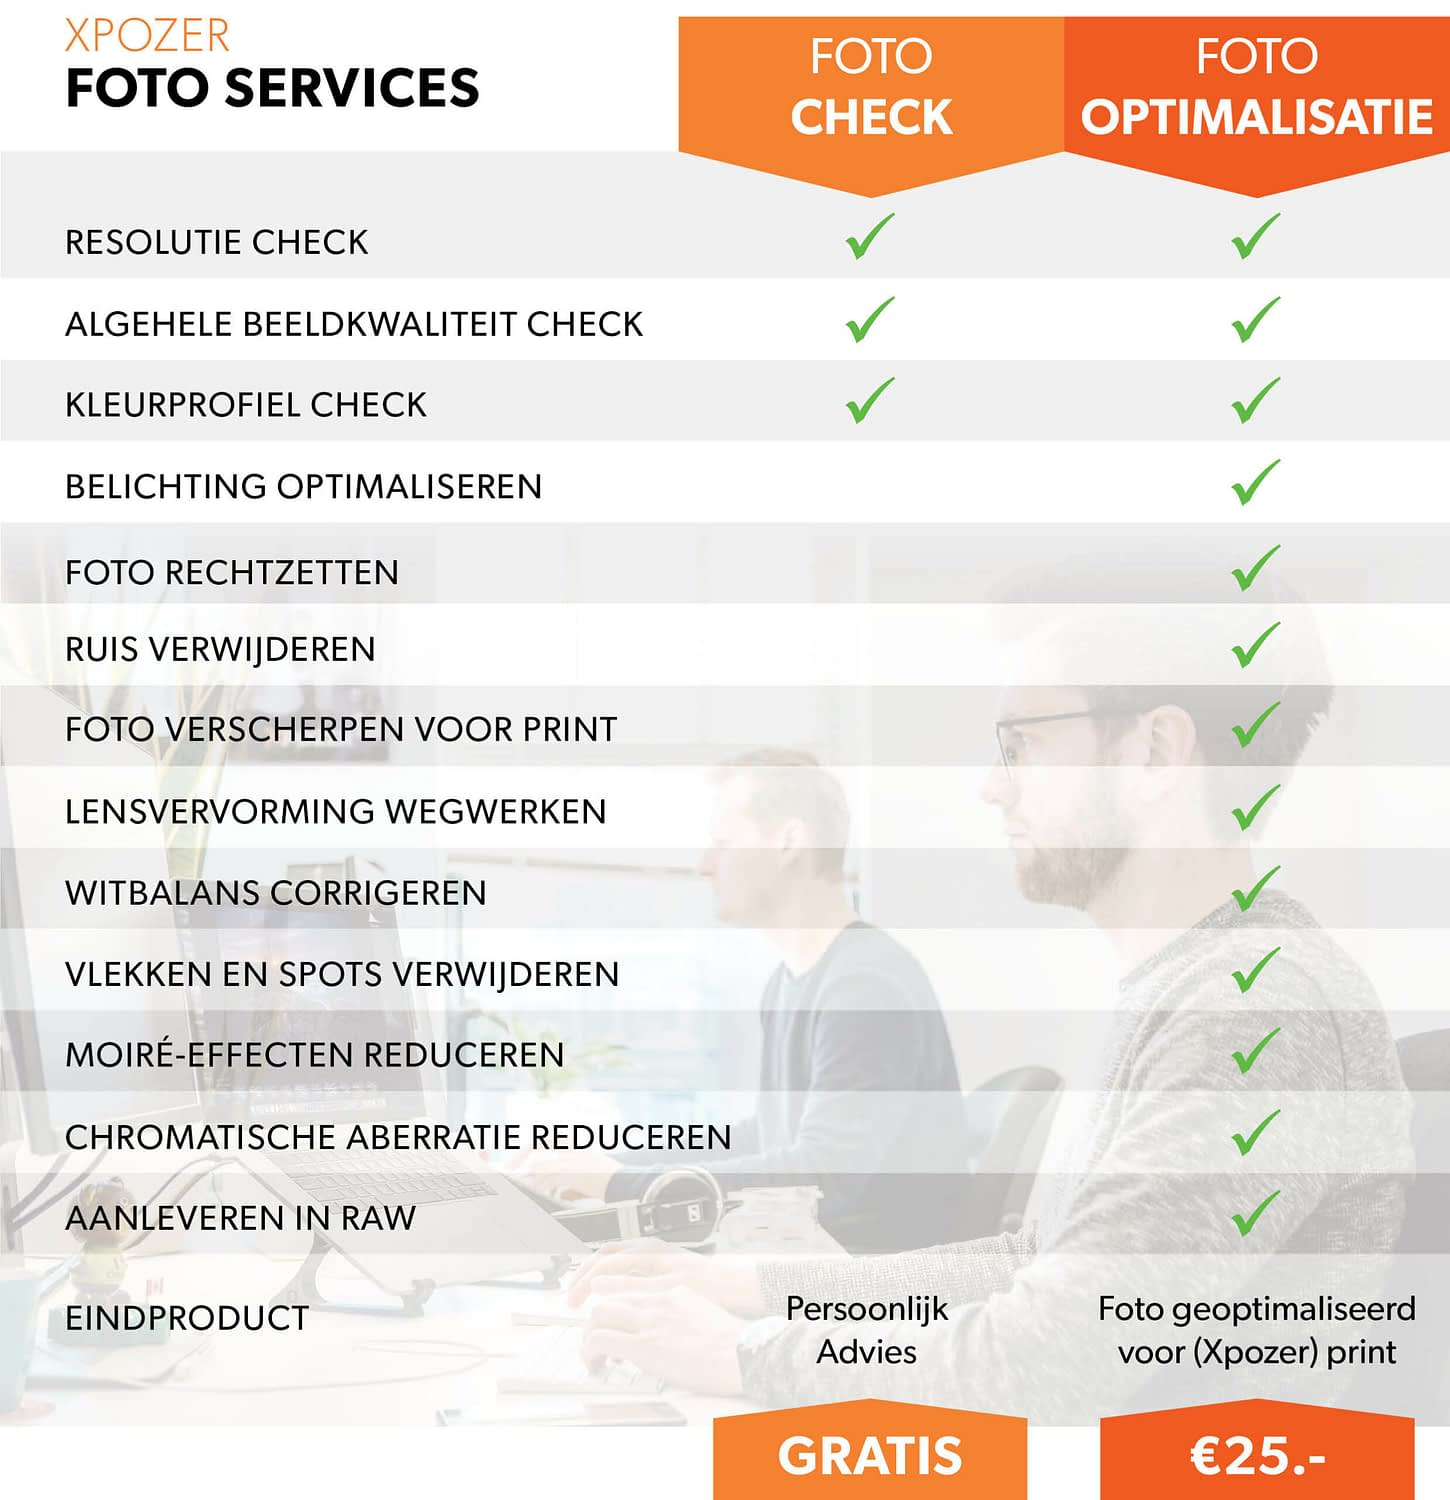 Xpozer foto optimalisatie service